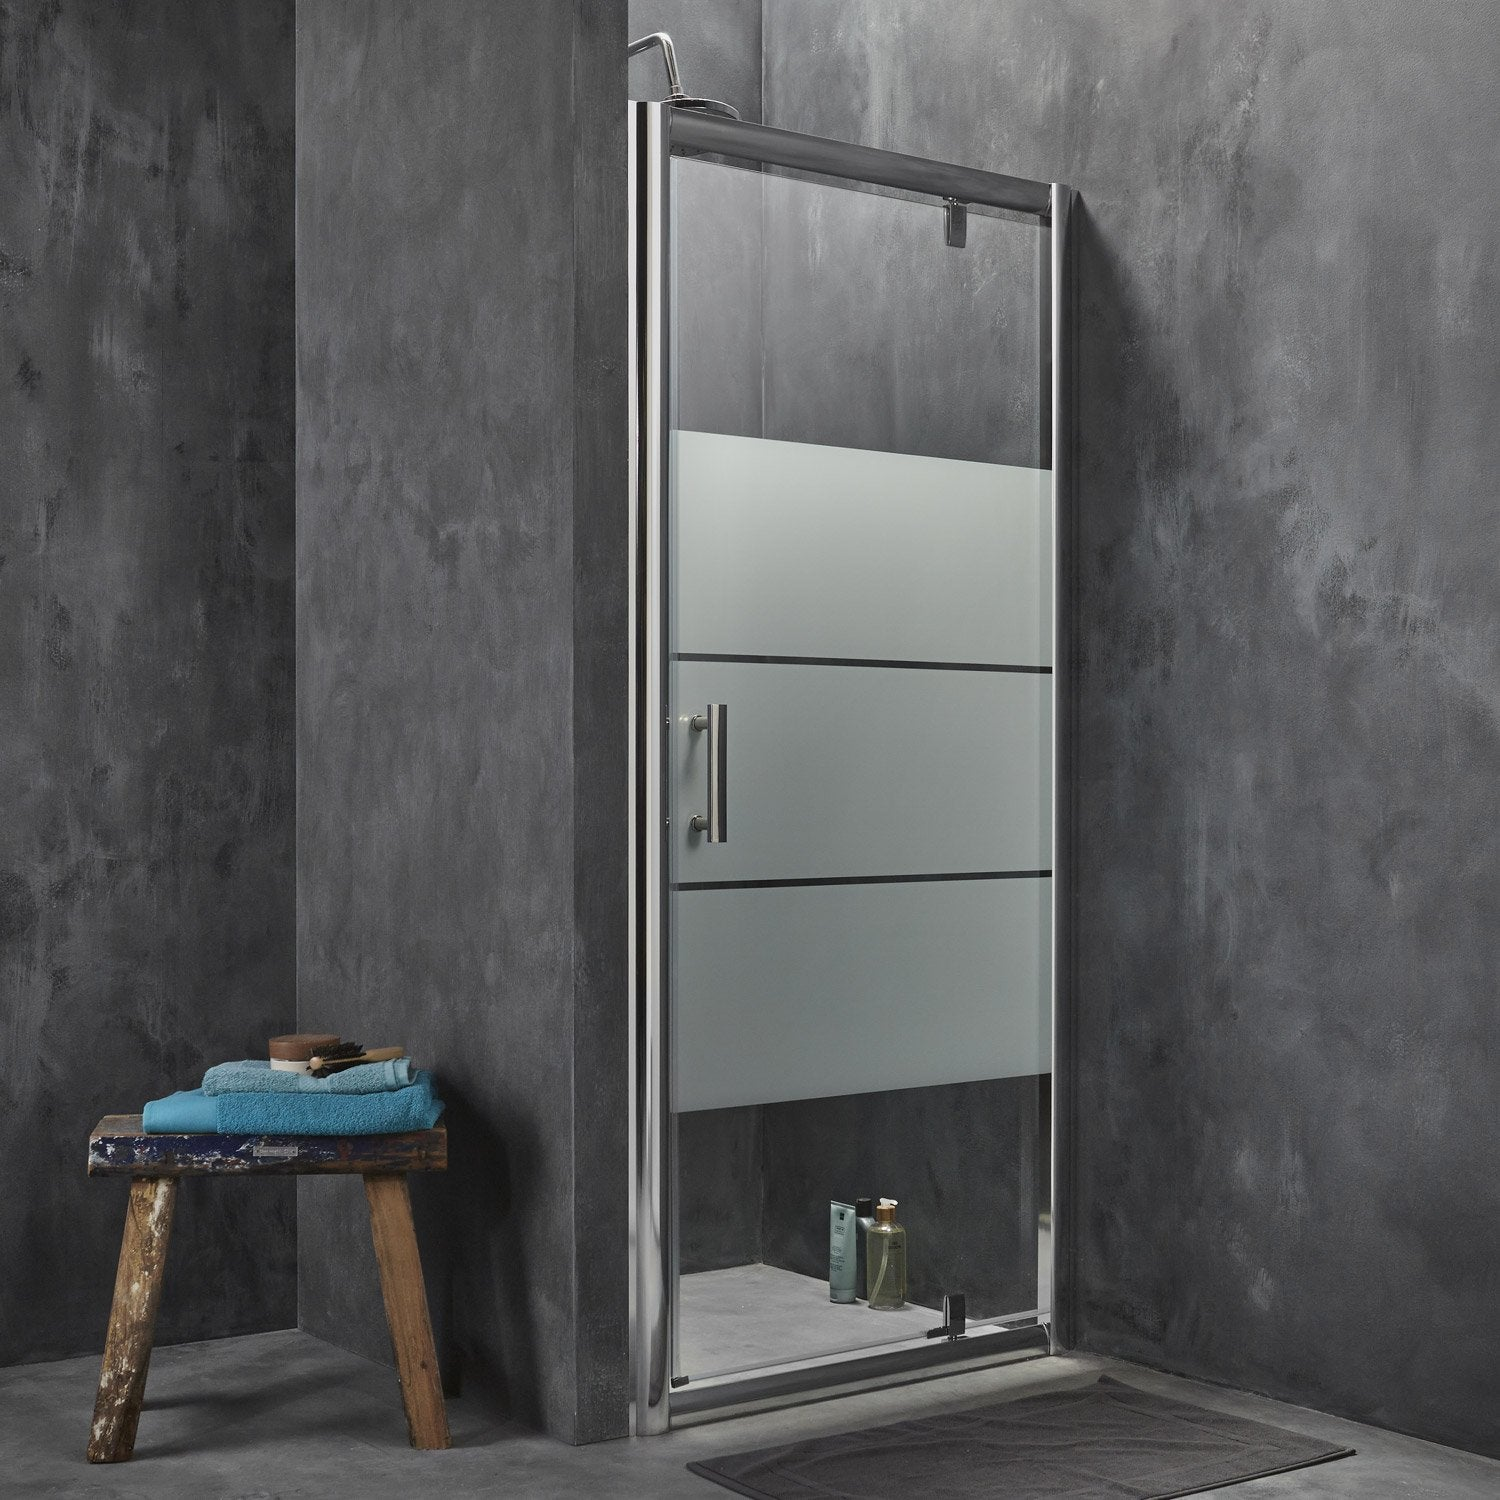 Porte de douche pivotante optima2 leroy merlin for Porte pliante douche